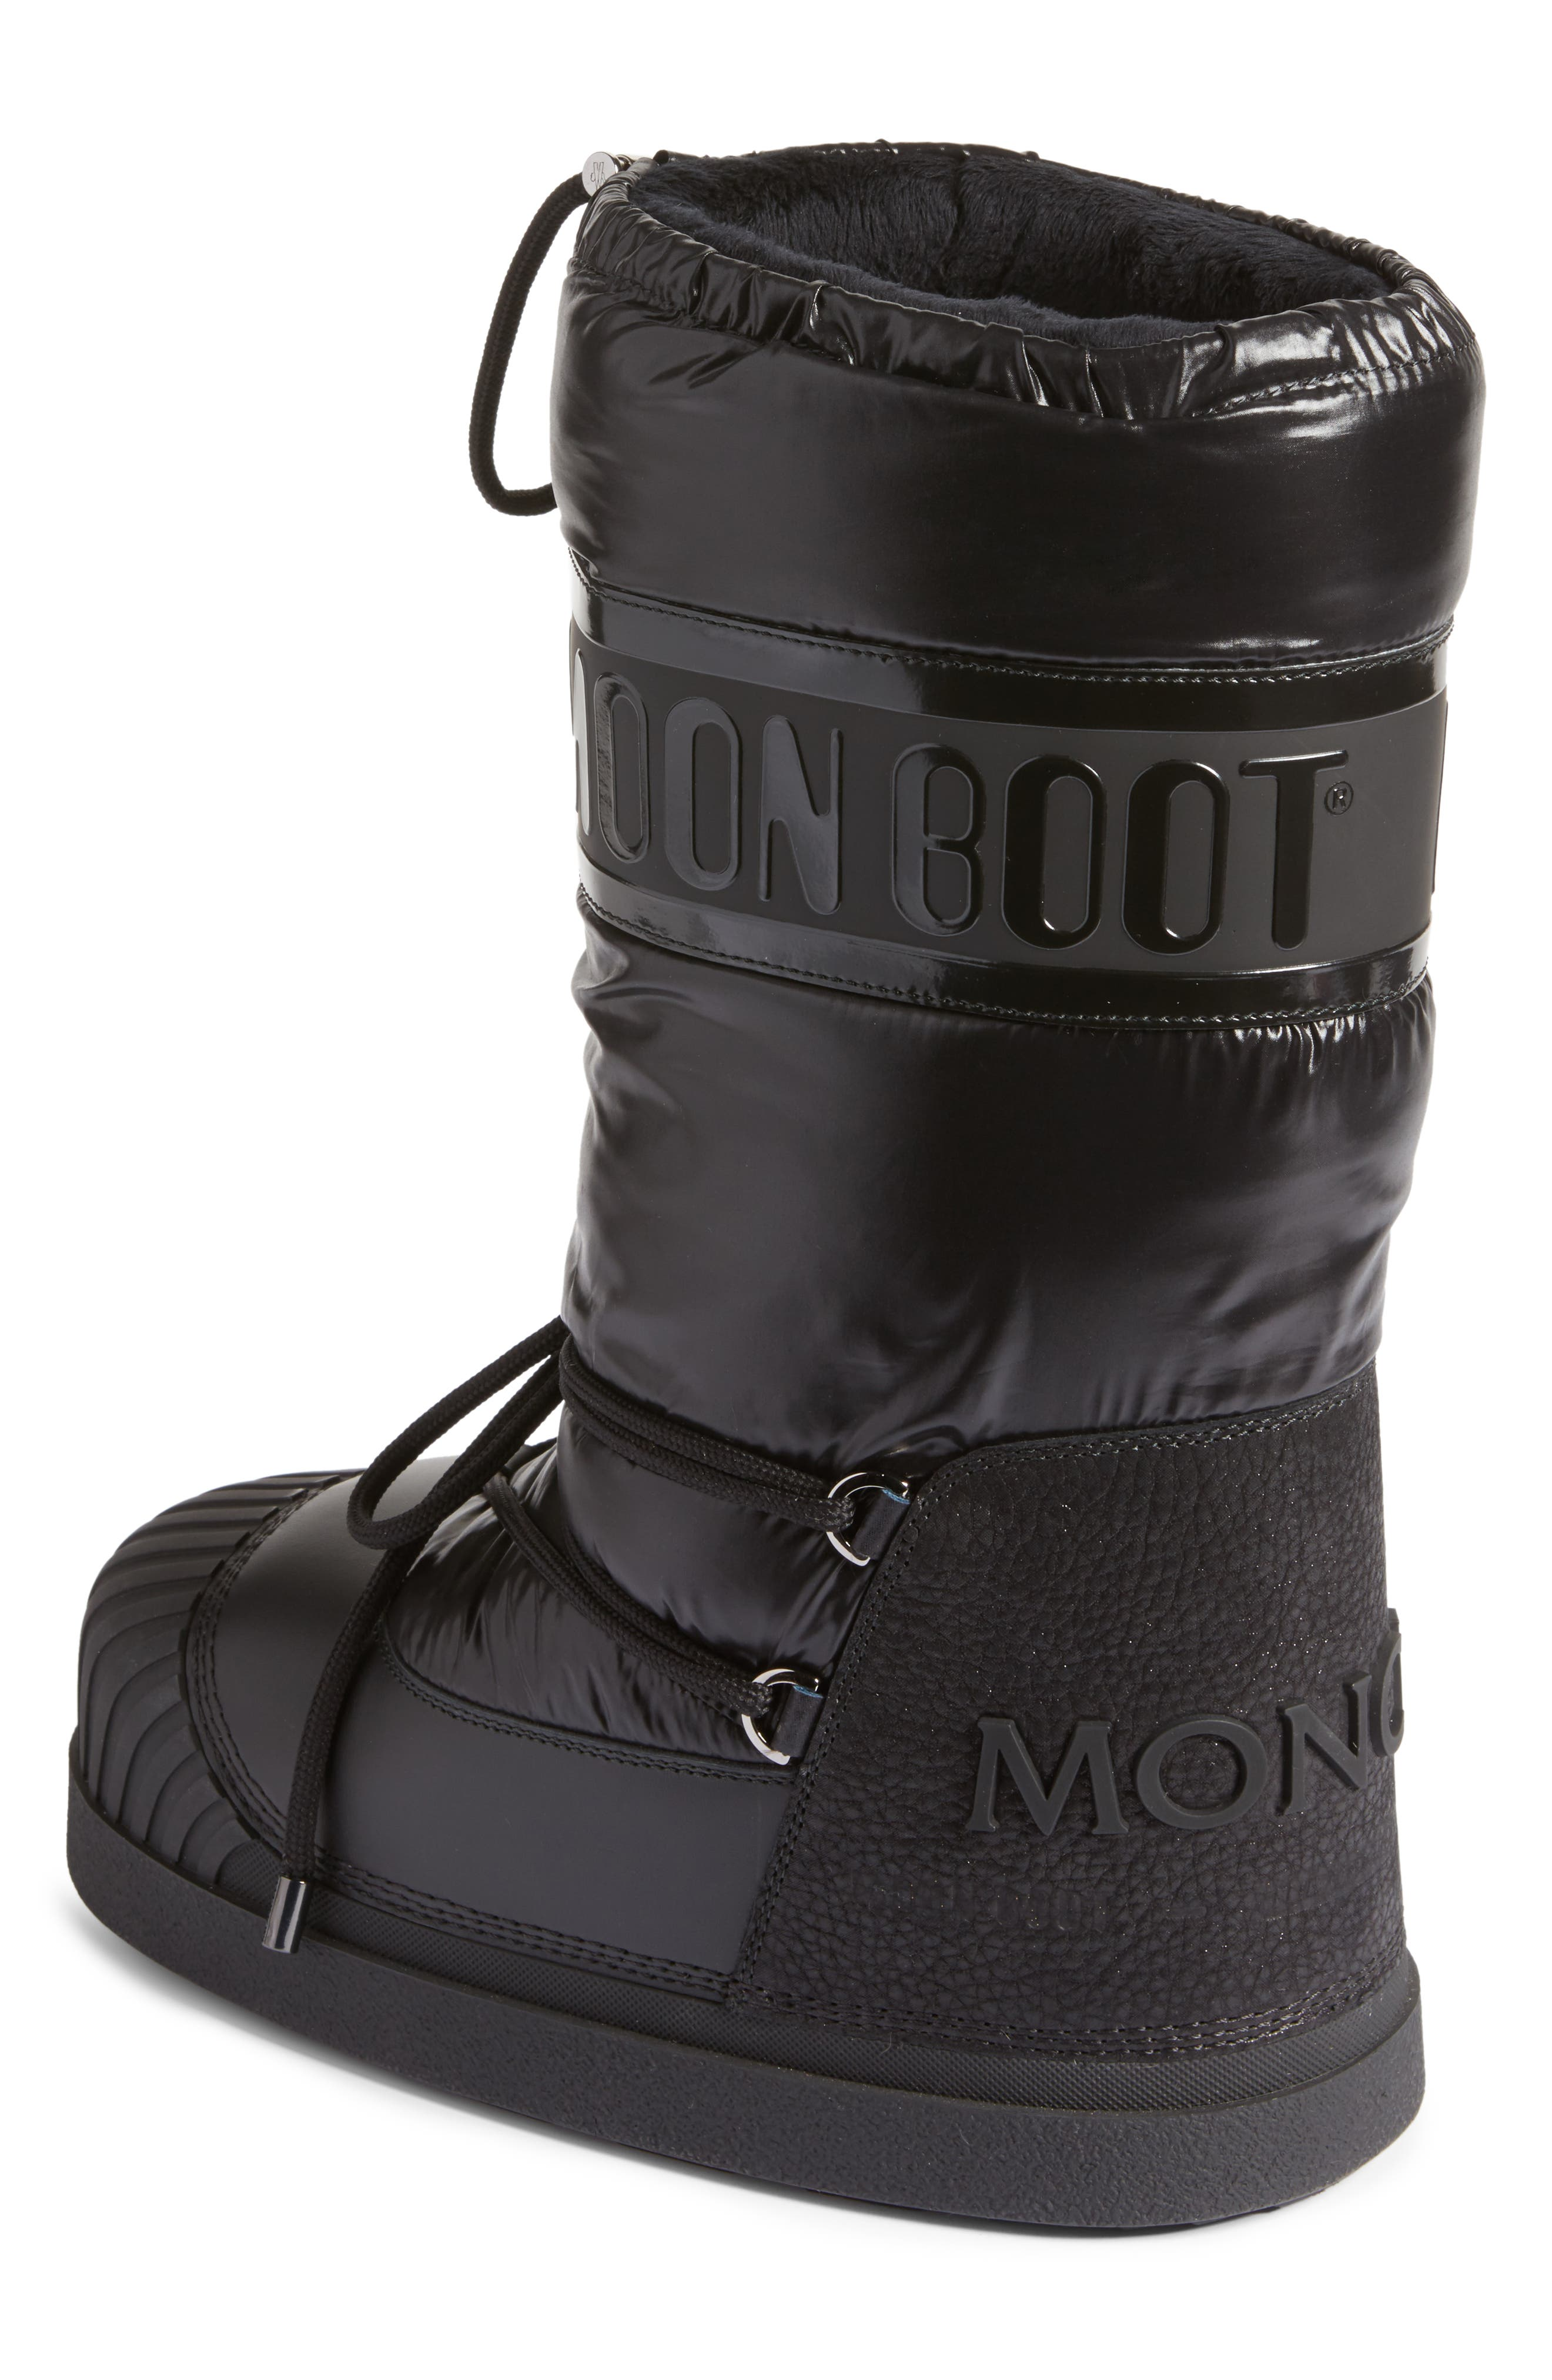 Venus Moon Boot,                             Alternate thumbnail 2, color,                             Black